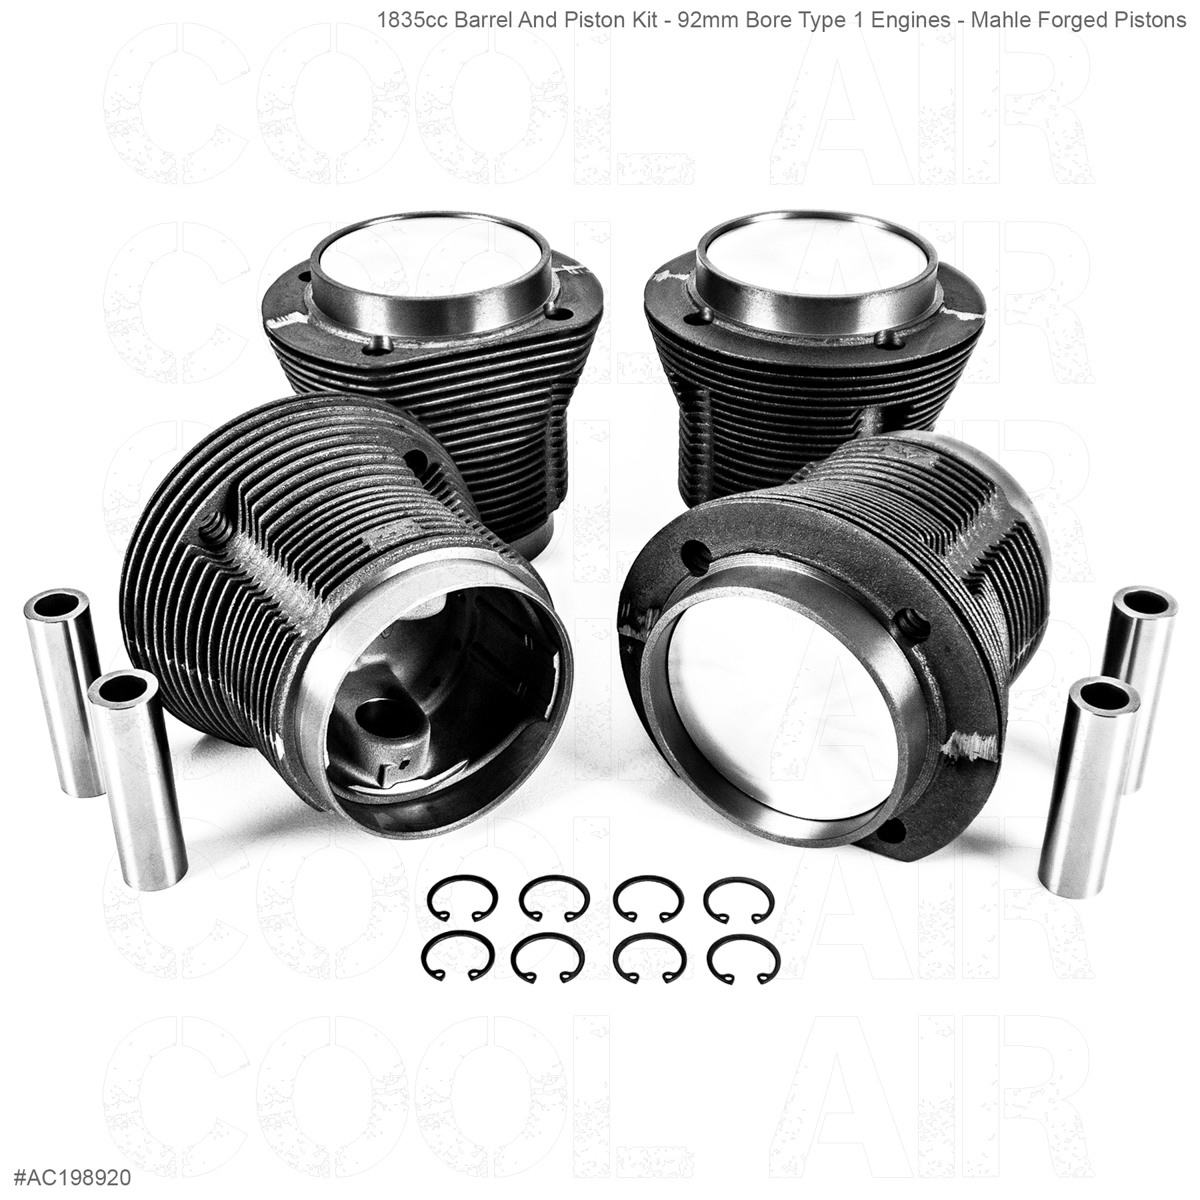 1835cc Barrel And Piston Kit - 92mm Bore Type 1 Engines - Mahle Forged Pistons